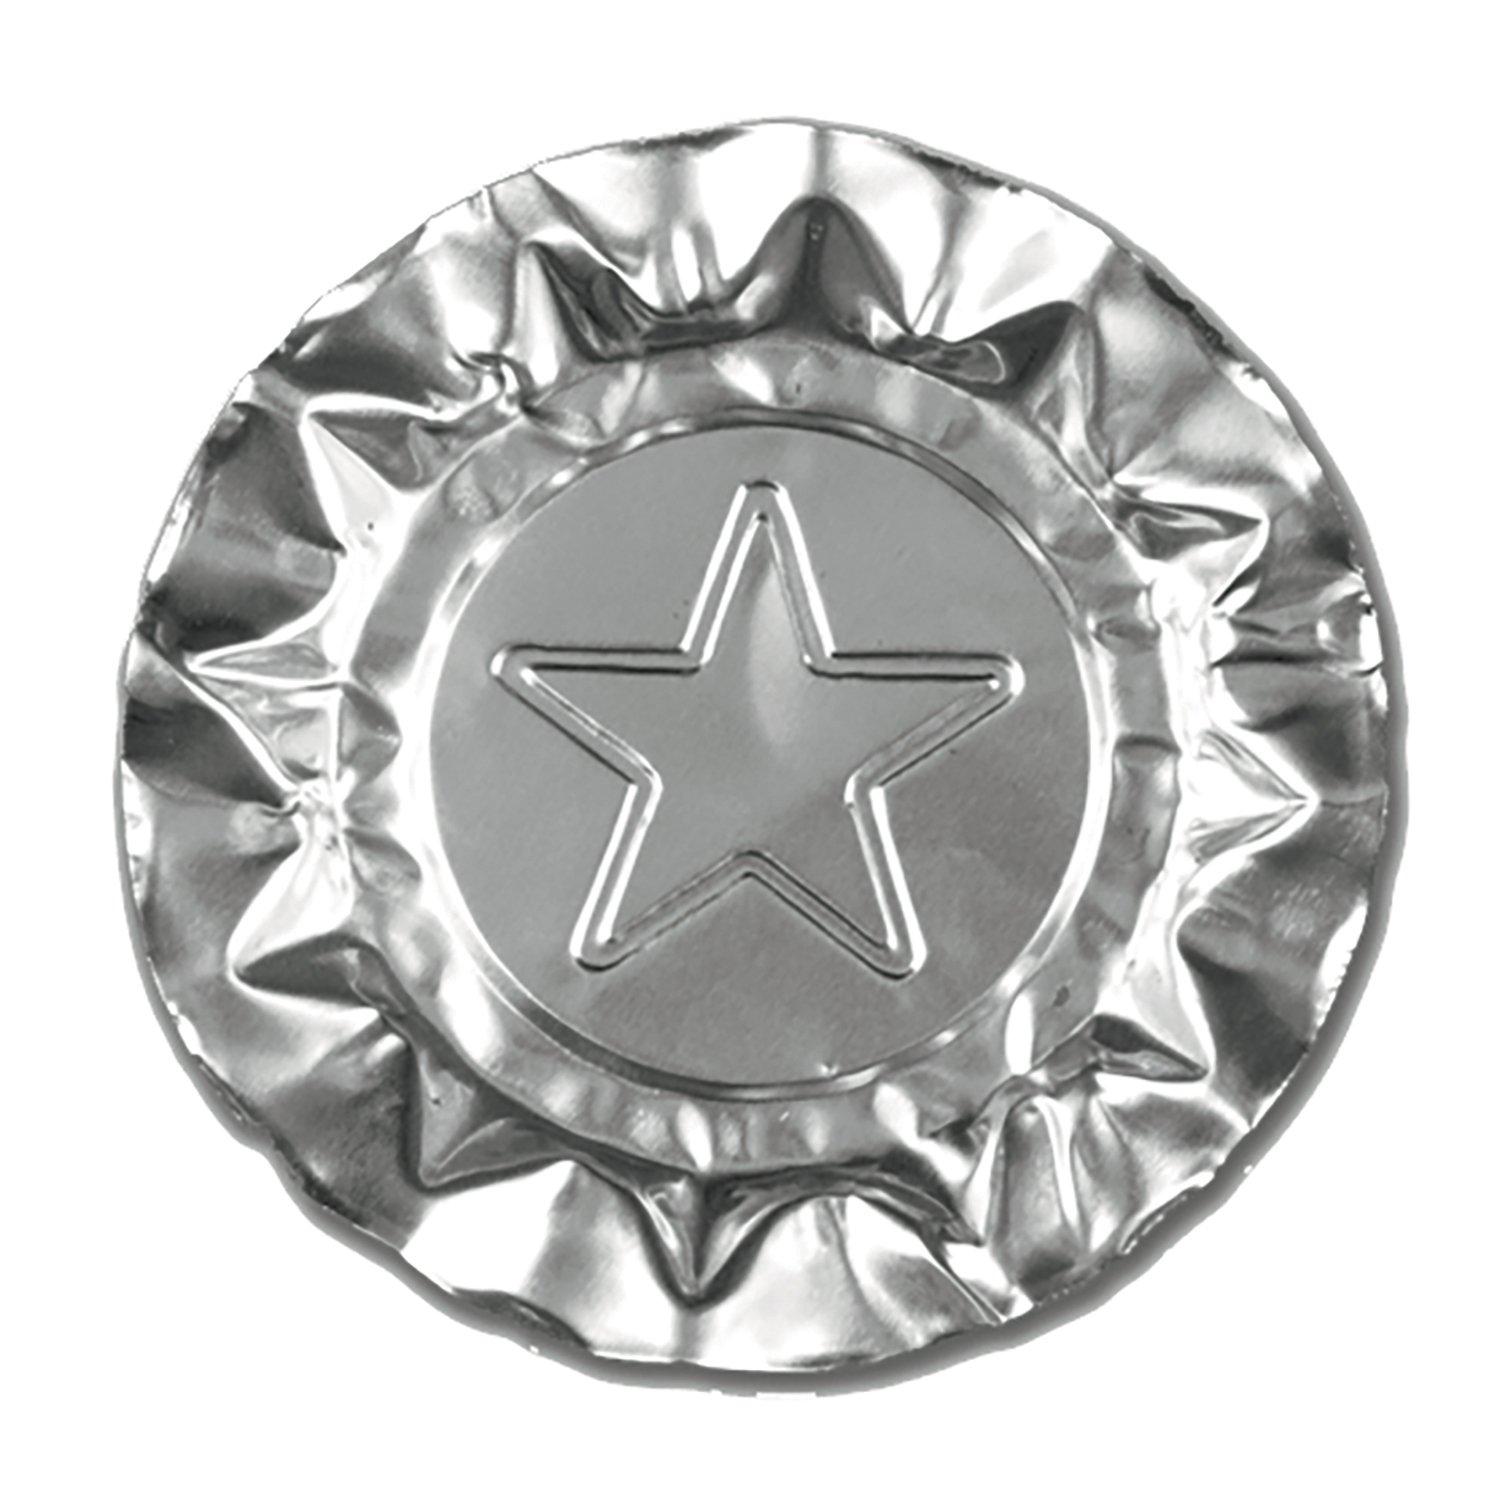 Royal Silver Star Aluminum Ashtrays, Package of 1000 by Royal